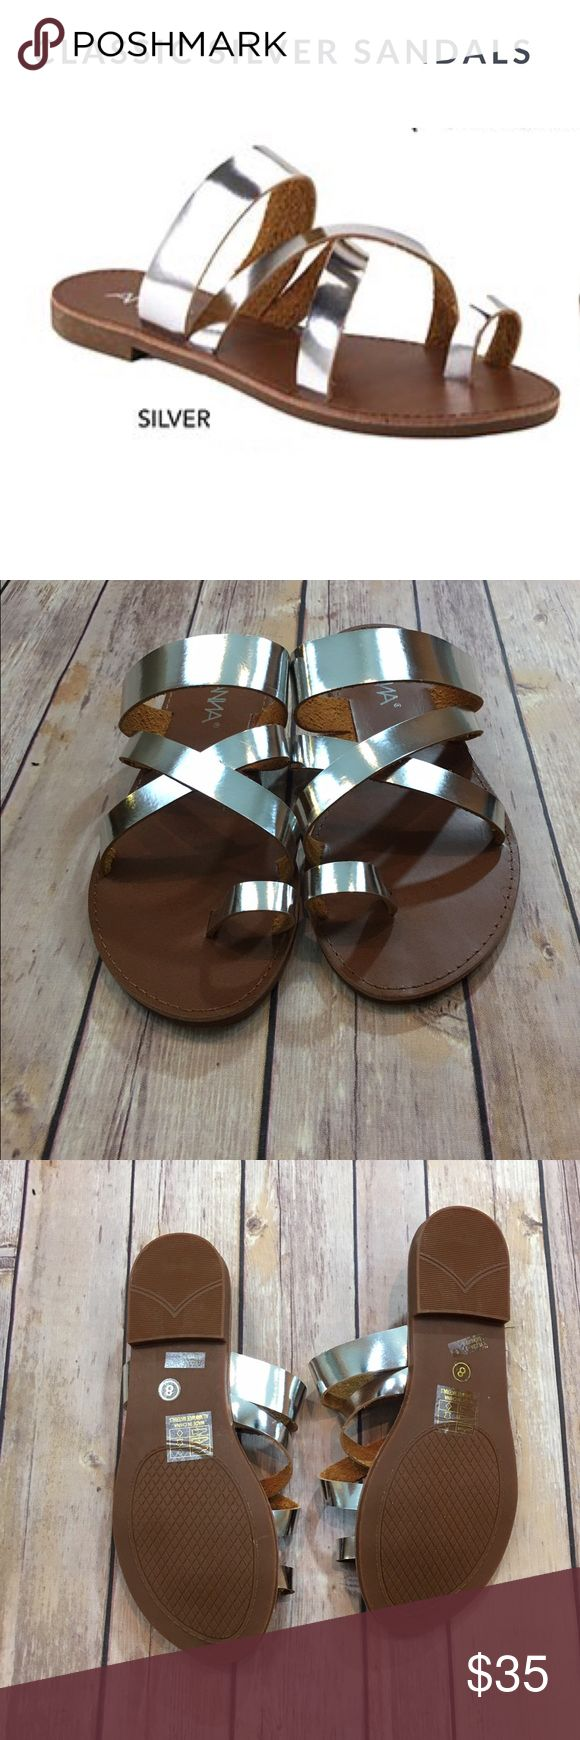 Silver Metallic Sandals Classic metallic silver strappy sandals. Perfect for day or night out with your friends. Pair them with jeans, leggings Maxi Dresses or any spring/ summer outfit! Silver metallic color that would match anything! Fabfindz Shoes Sandals